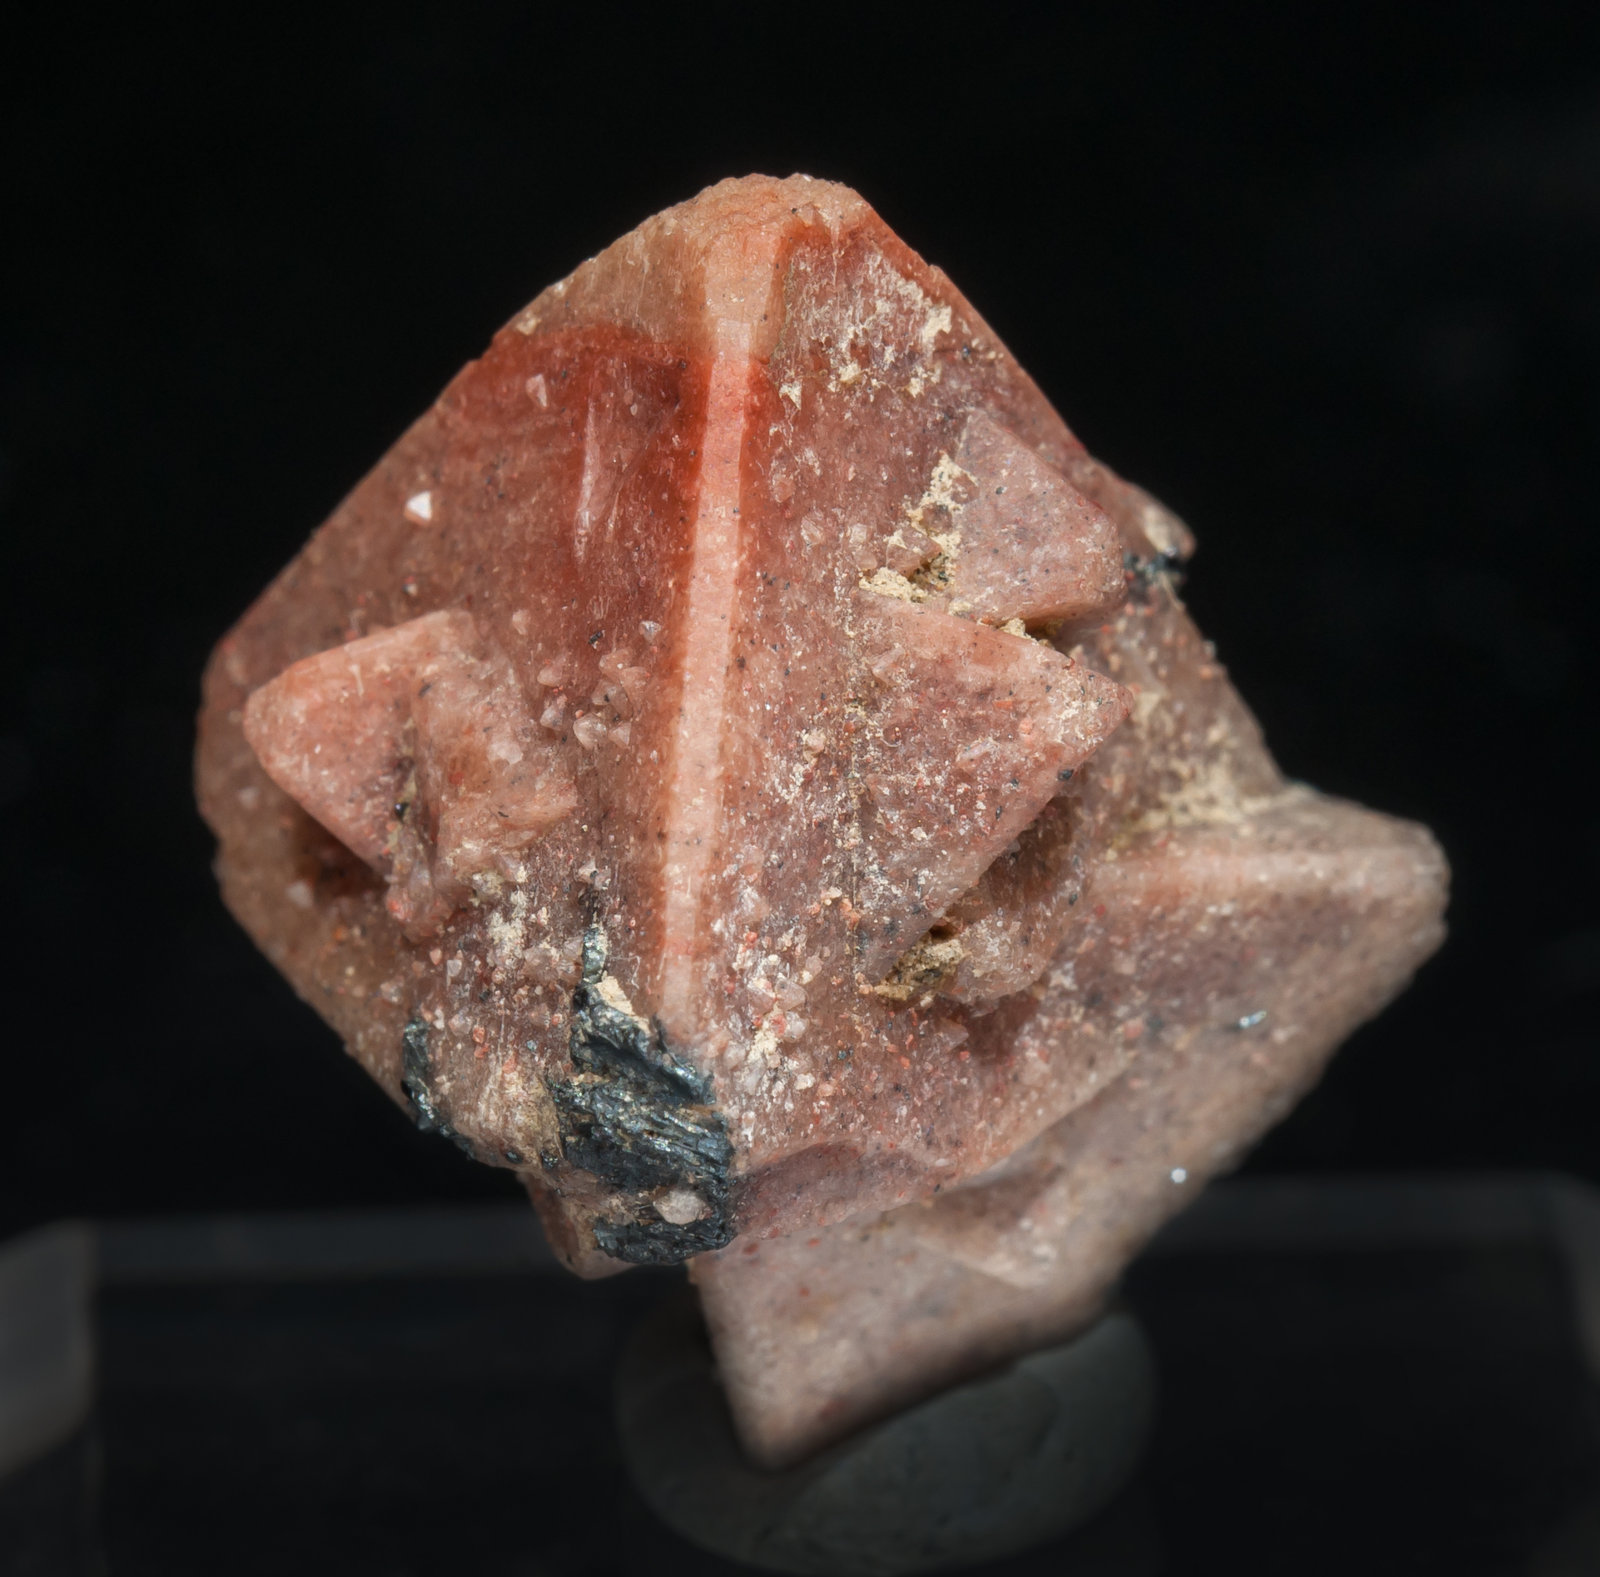 specimens/s_imagesAK9/Zunyite-MR57AK9r.jpg